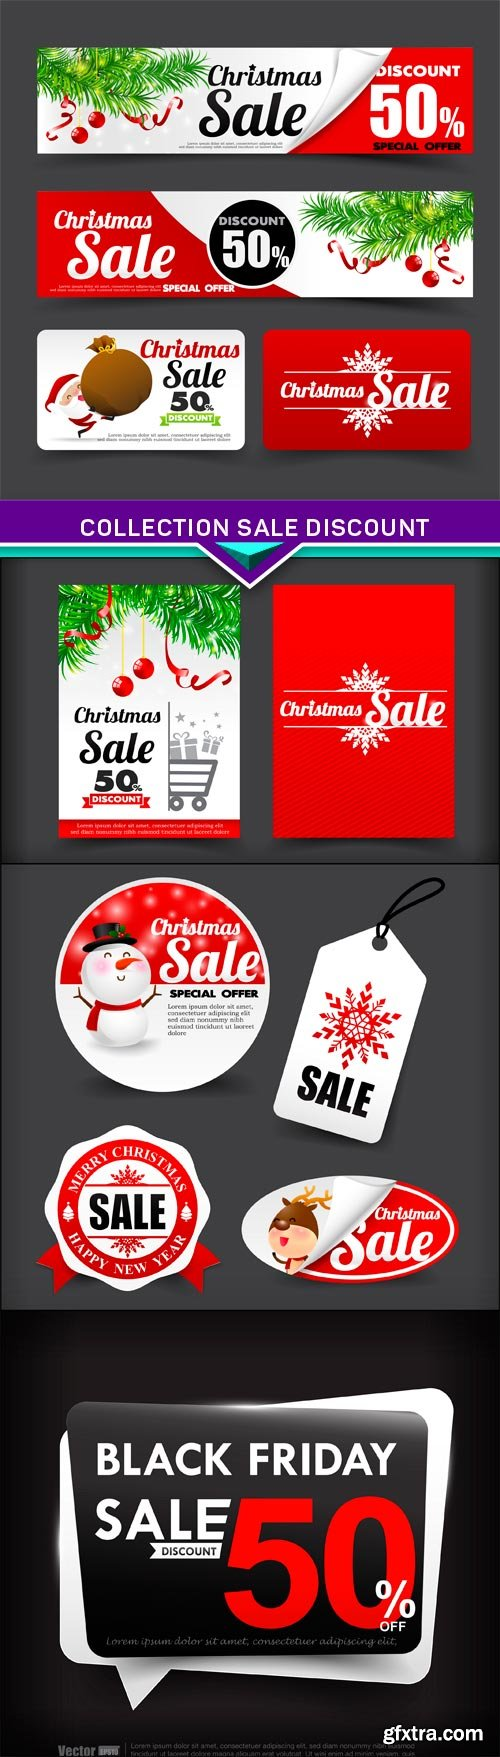 Collection of merry christmas santa, sale discount 4X EPS